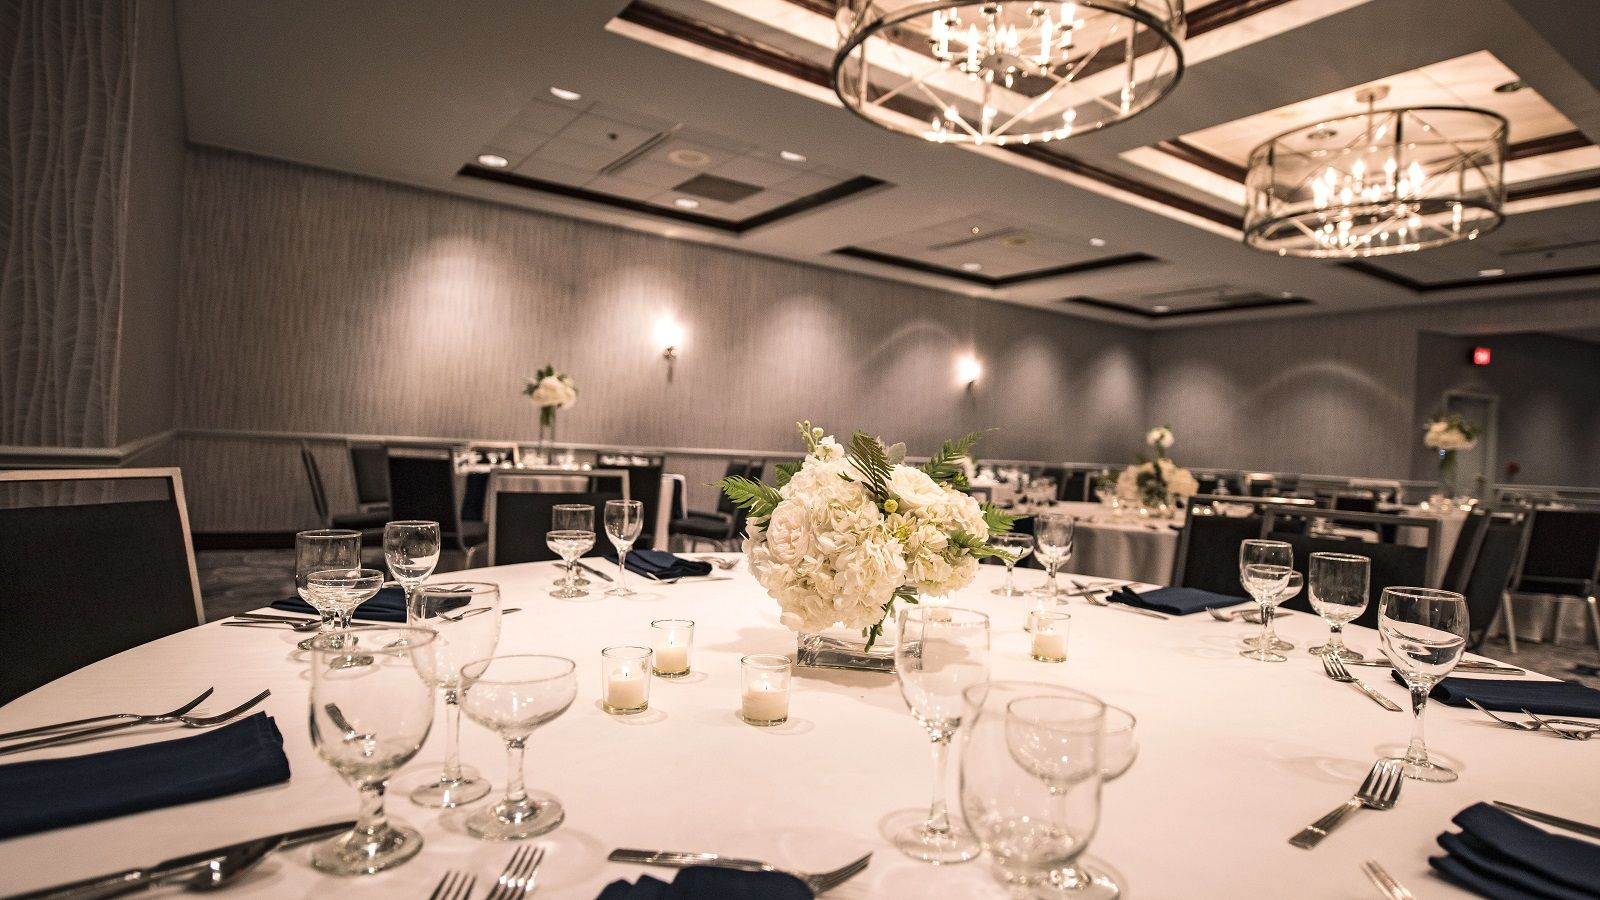 Sheraton Madison Hotel - Ballroom Wedding Set Up